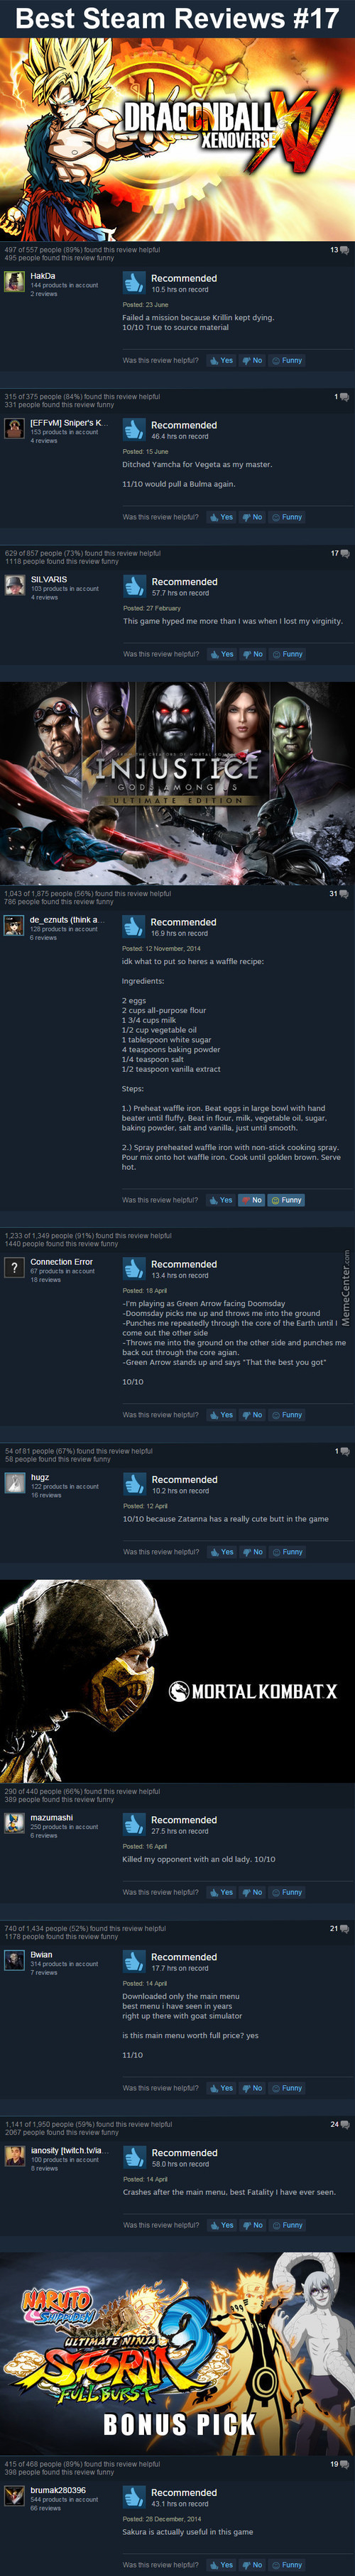 """Best Steam Reviews #17 - The """"vydia Causes Violence"""" Edition"""